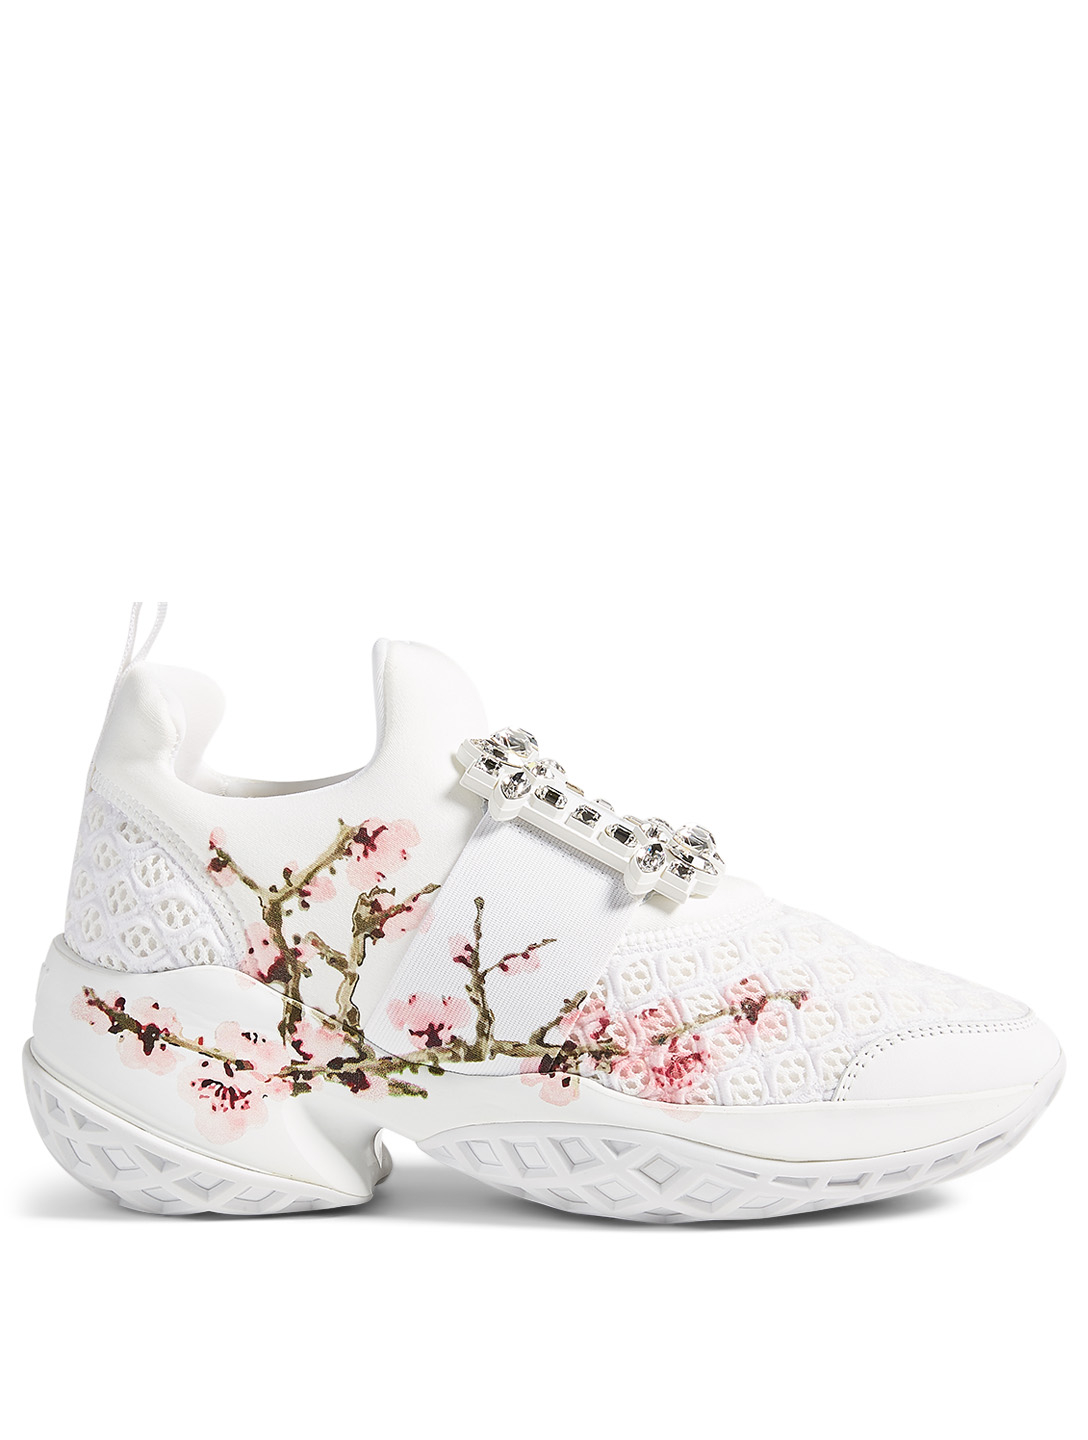 ROGER VIVIER Viv' Run Strass Mesh Neoprene Sneakers With Floral Print Women's White